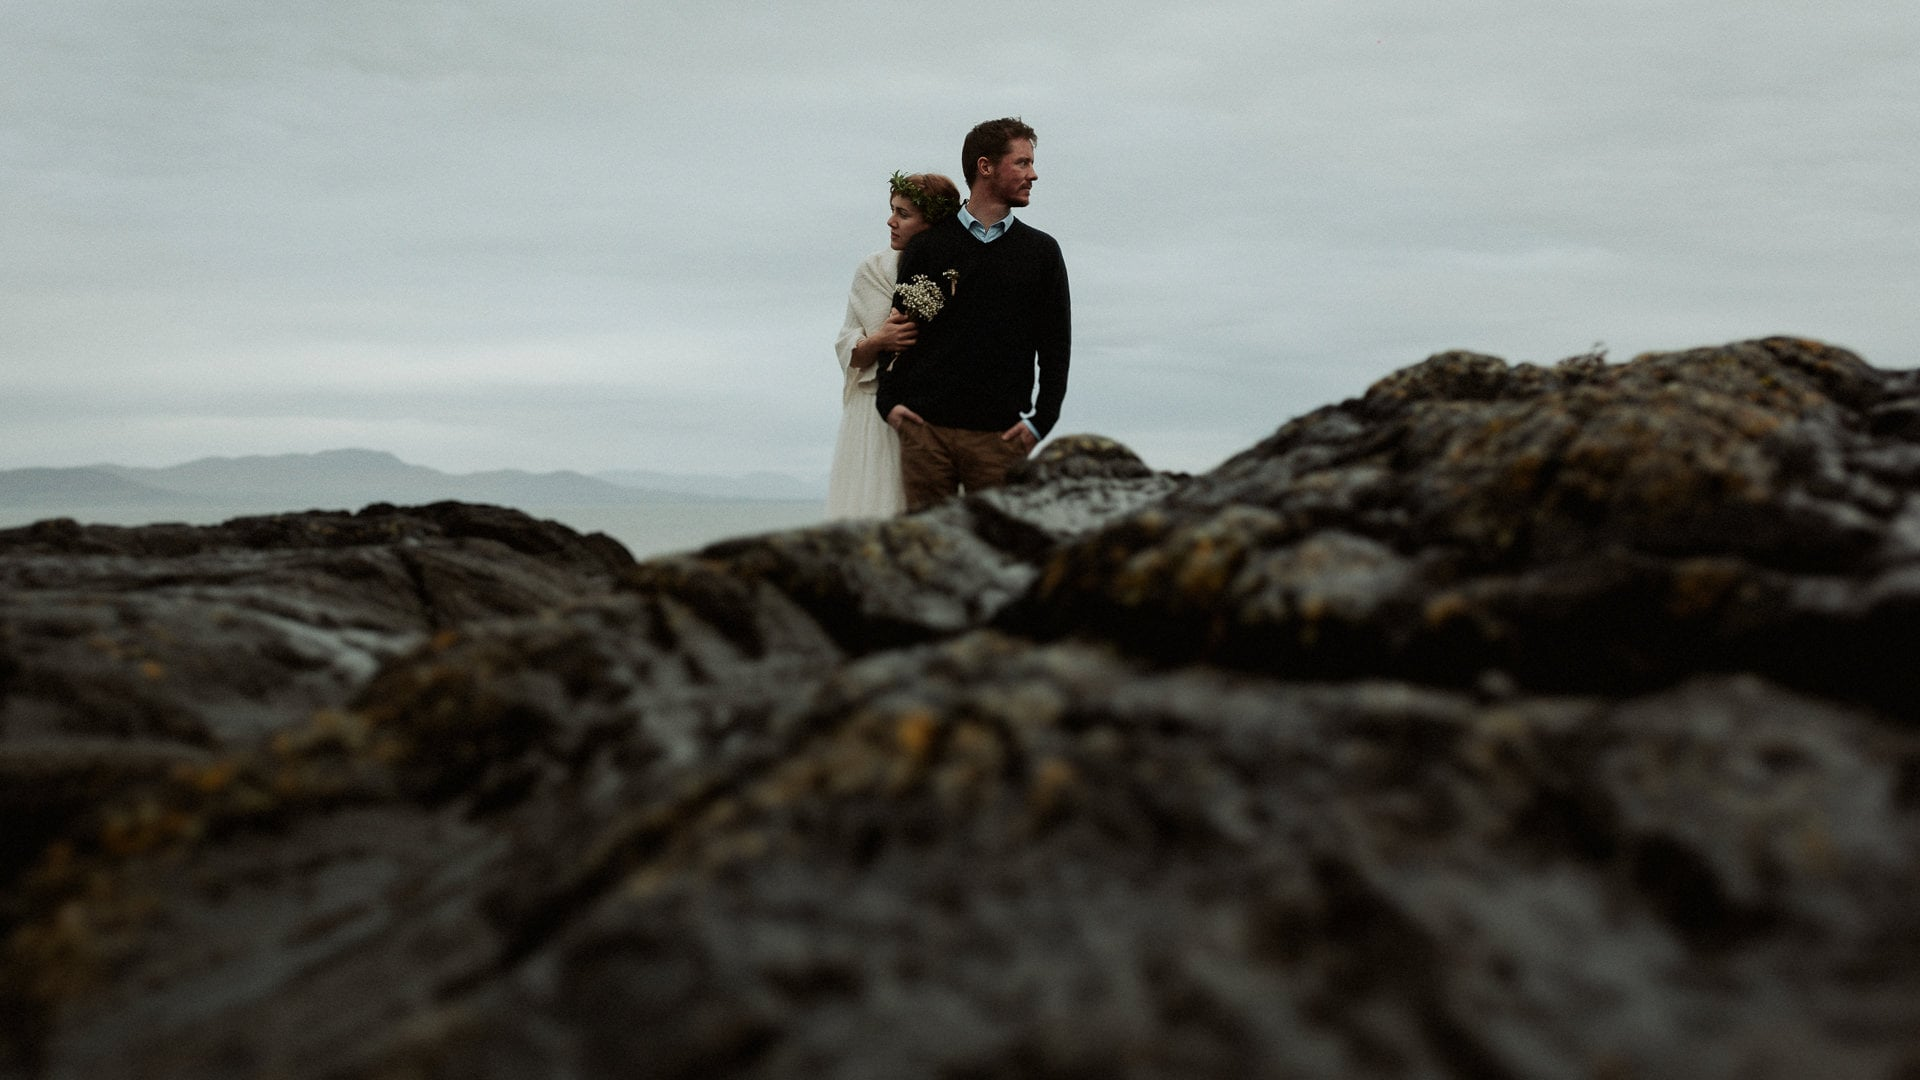 Ireland Wedding Photographer Destination Wedding Elopement 0020